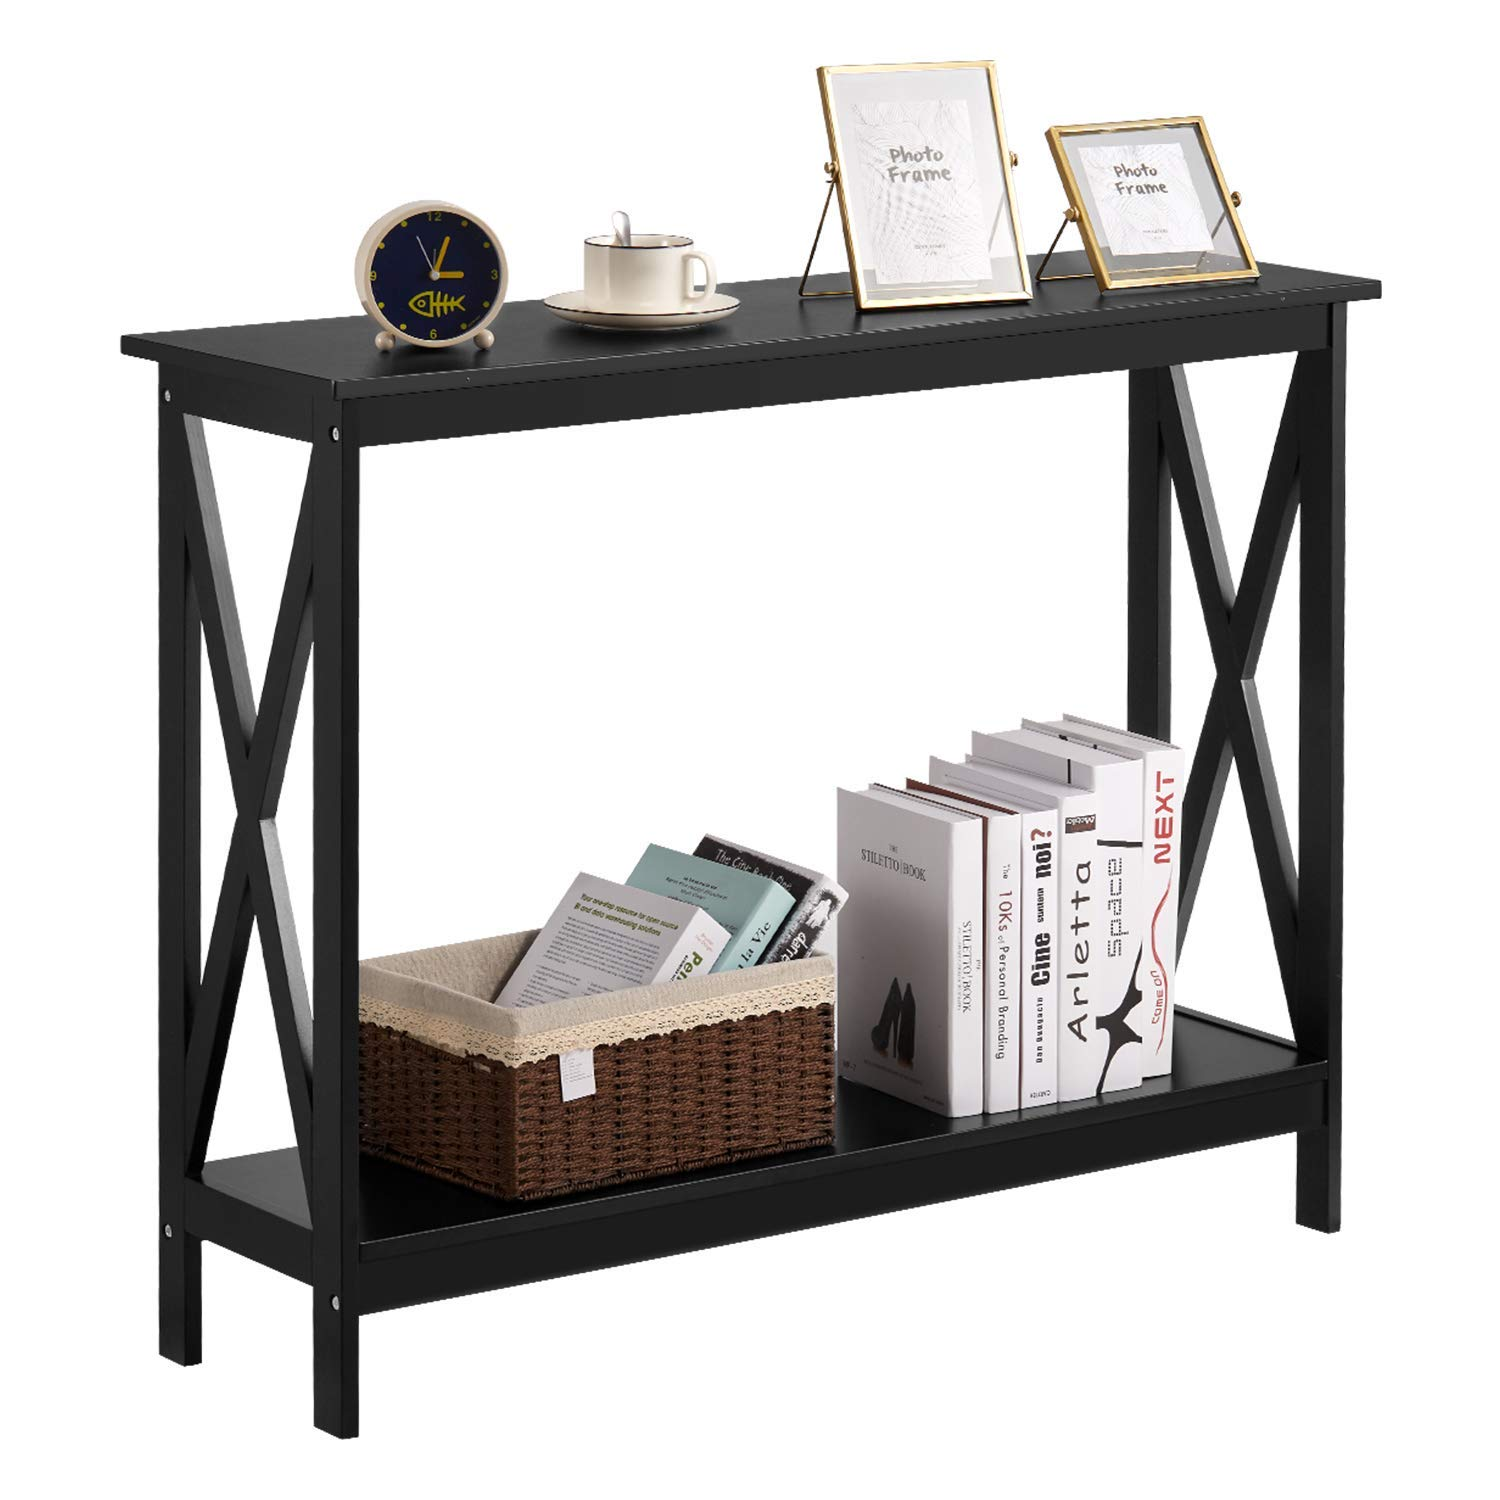 Kealive Console Table, 2-Tier Wood Sofa Table With Storage Shelf X Frame 39.4×11.8×31.5 inches, Black by kealive